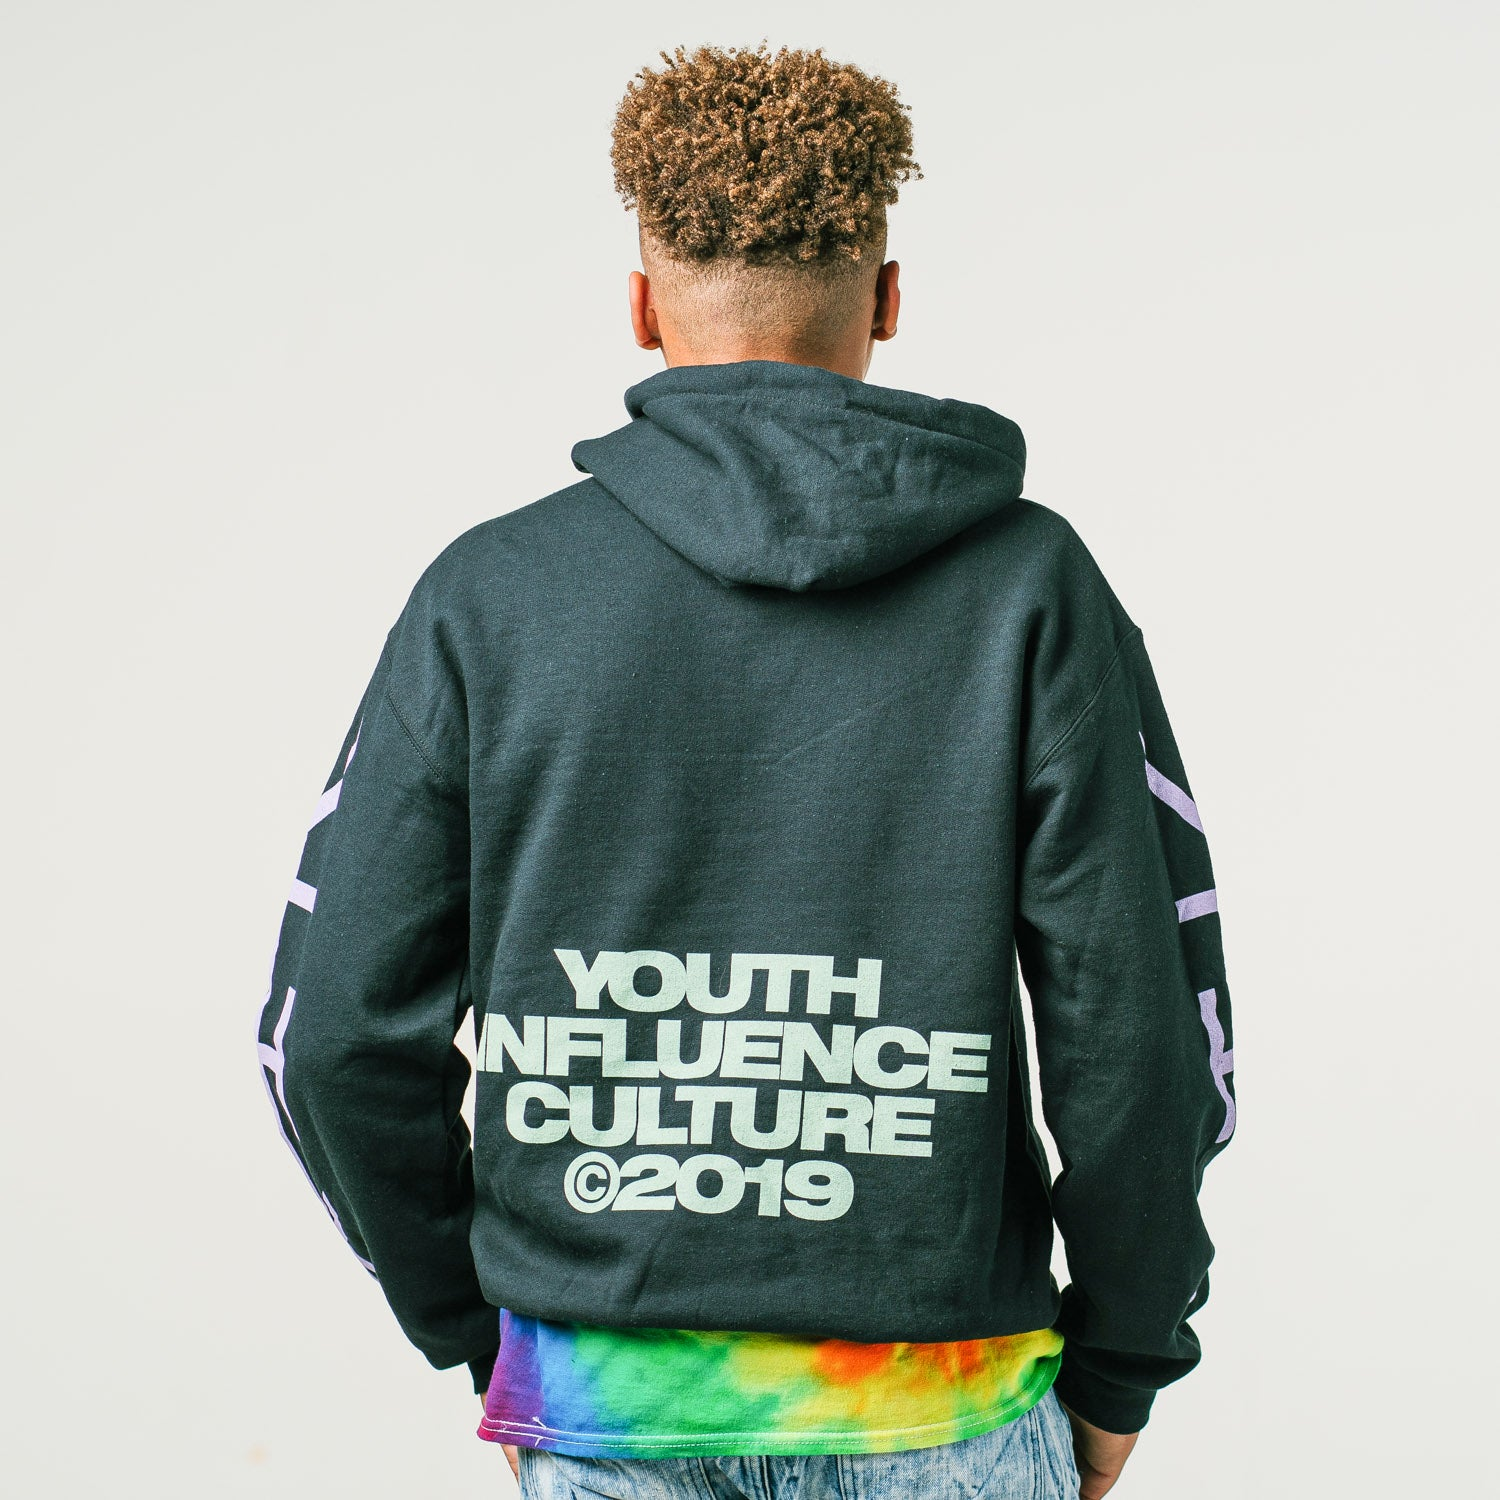 'YOUTH' hoodie